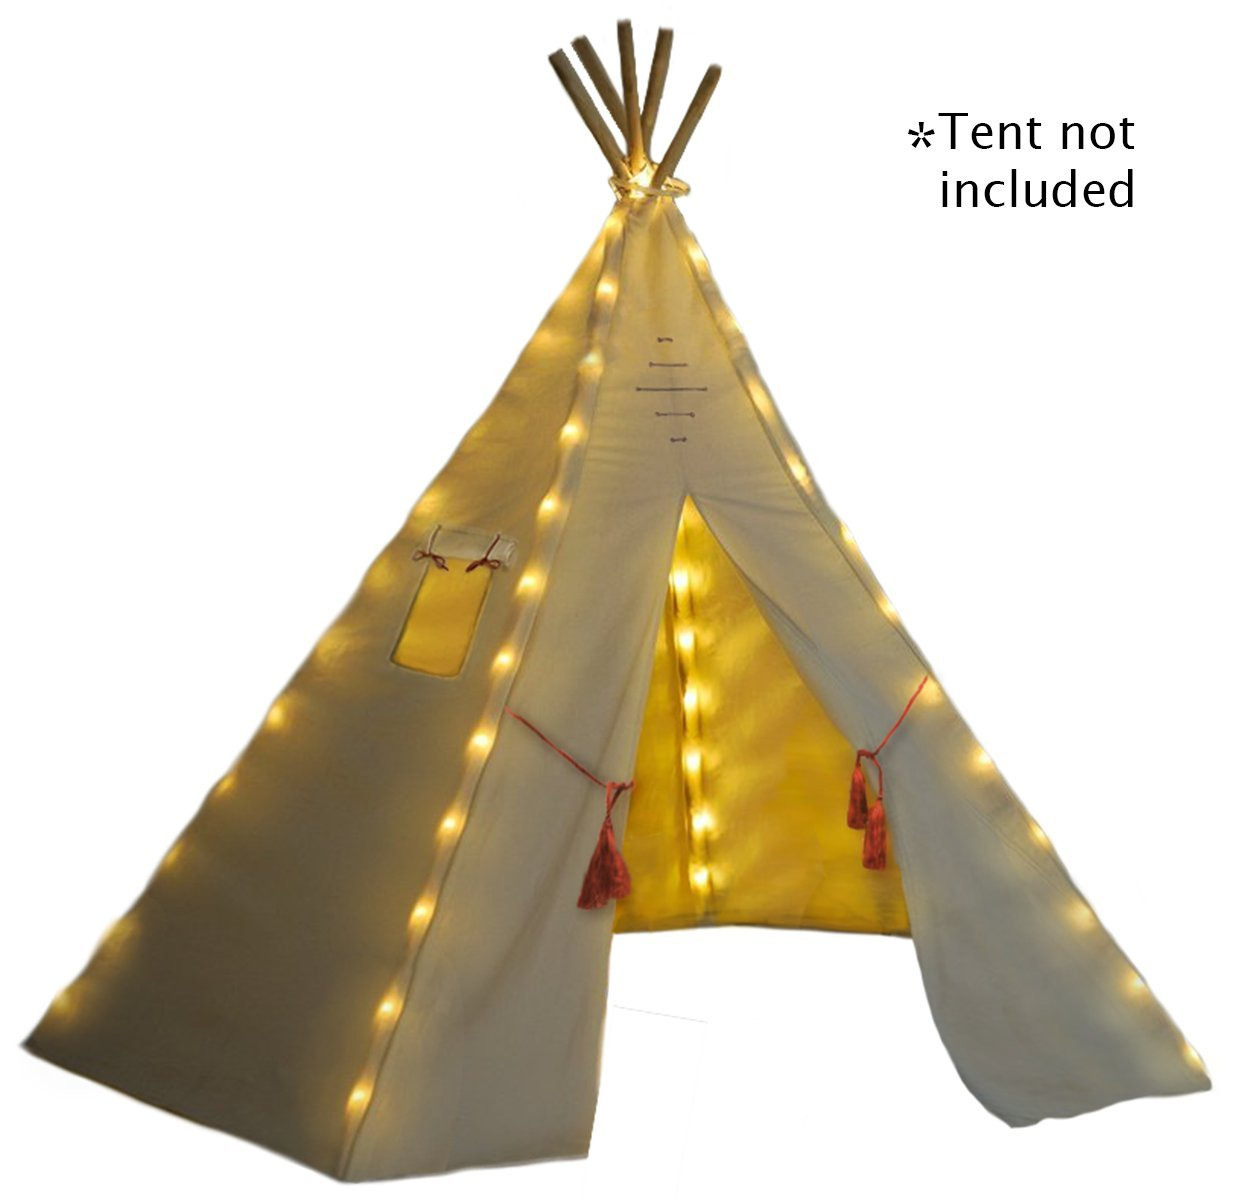 Fairy Lights for Teepee Tents - Battery Operated. Set of 75 Bright Yellow LED ...  sc 1 st  eBay & Fairy Lights for Teepee Tents Battery Operated Set of 75 Bright ...